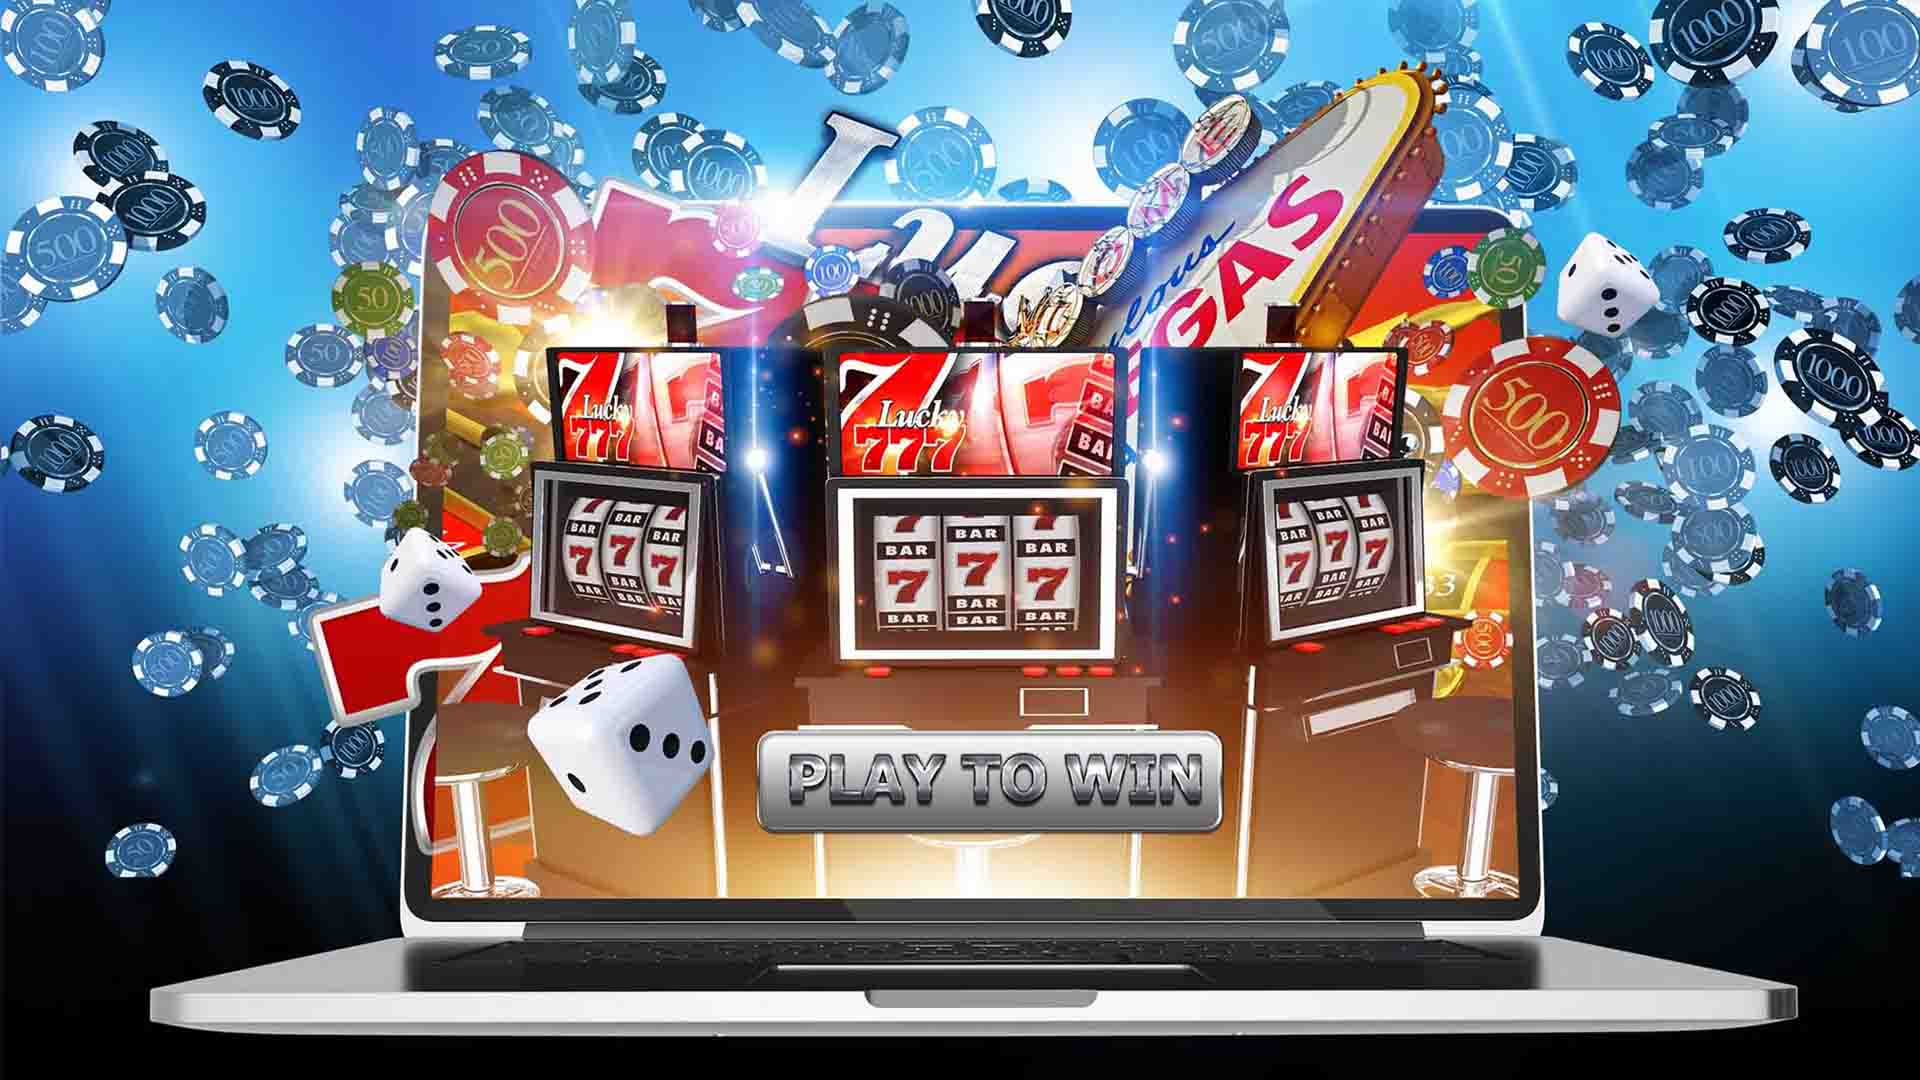 Essential Tips For Potential Online Casino Players